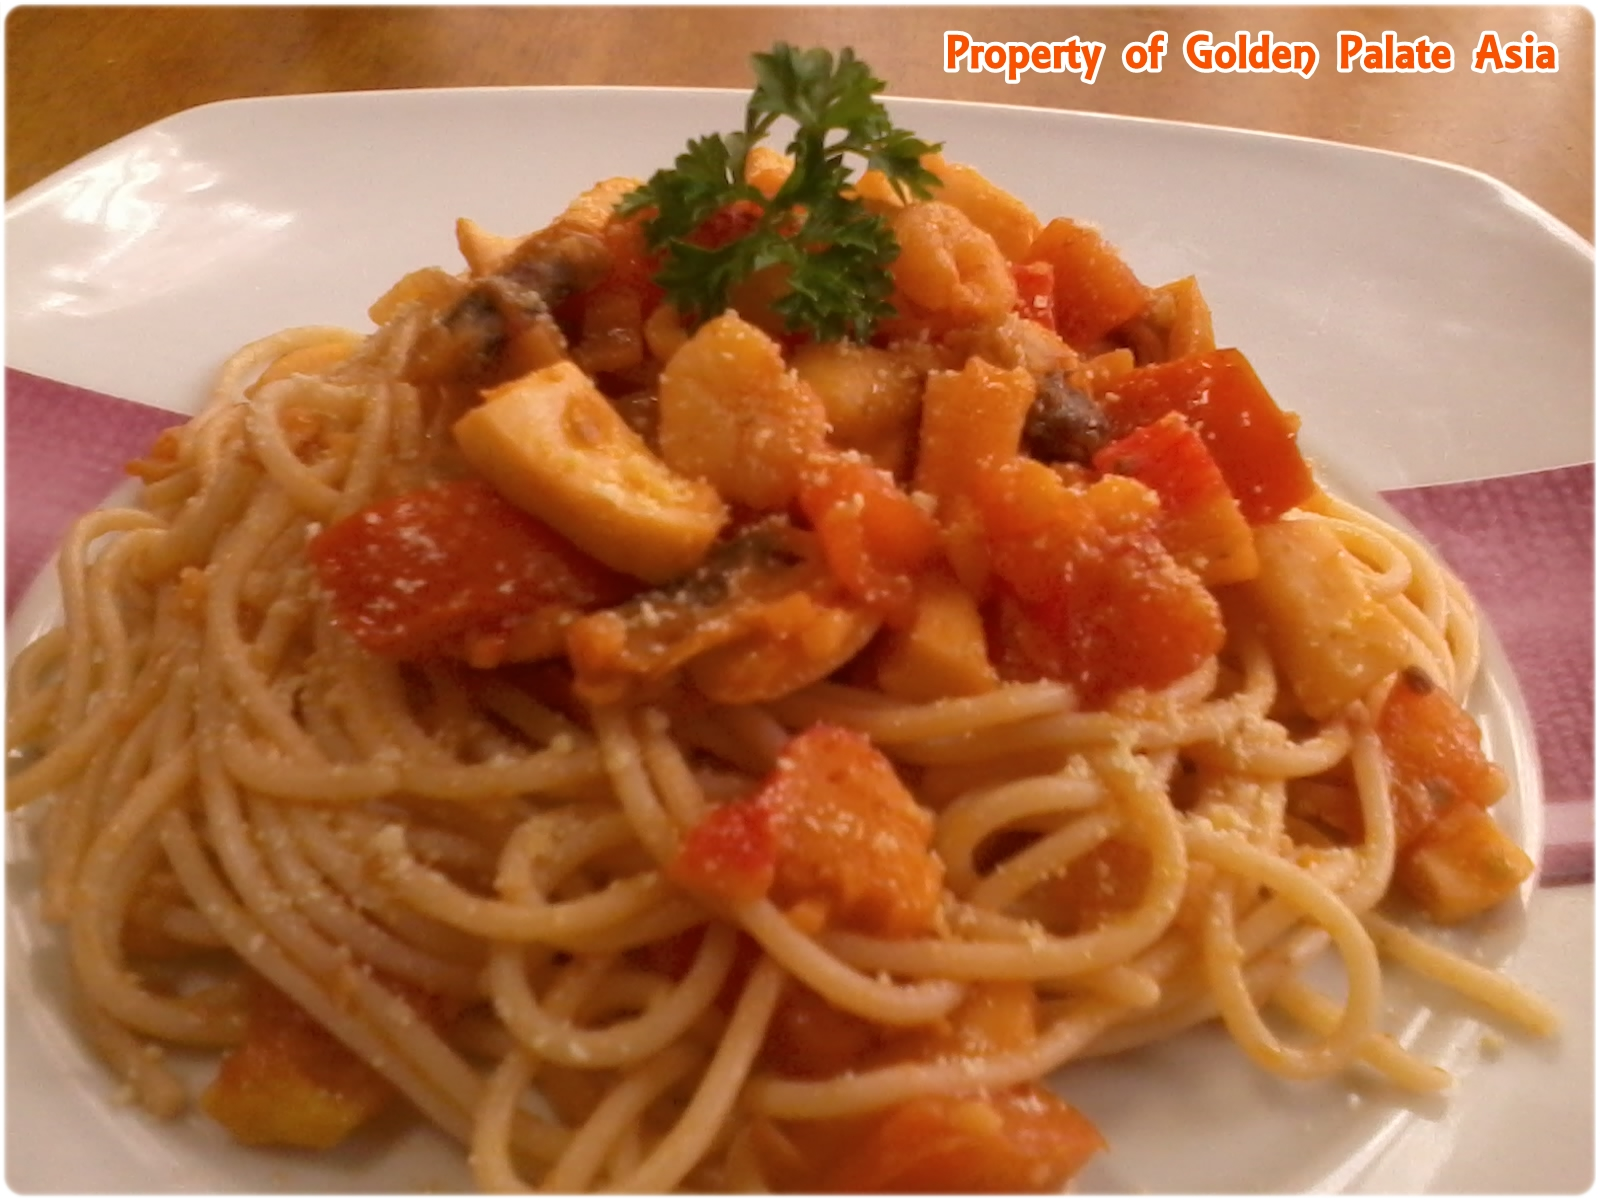 Golden Palate Asia: Tomato-based Seafood Pasta